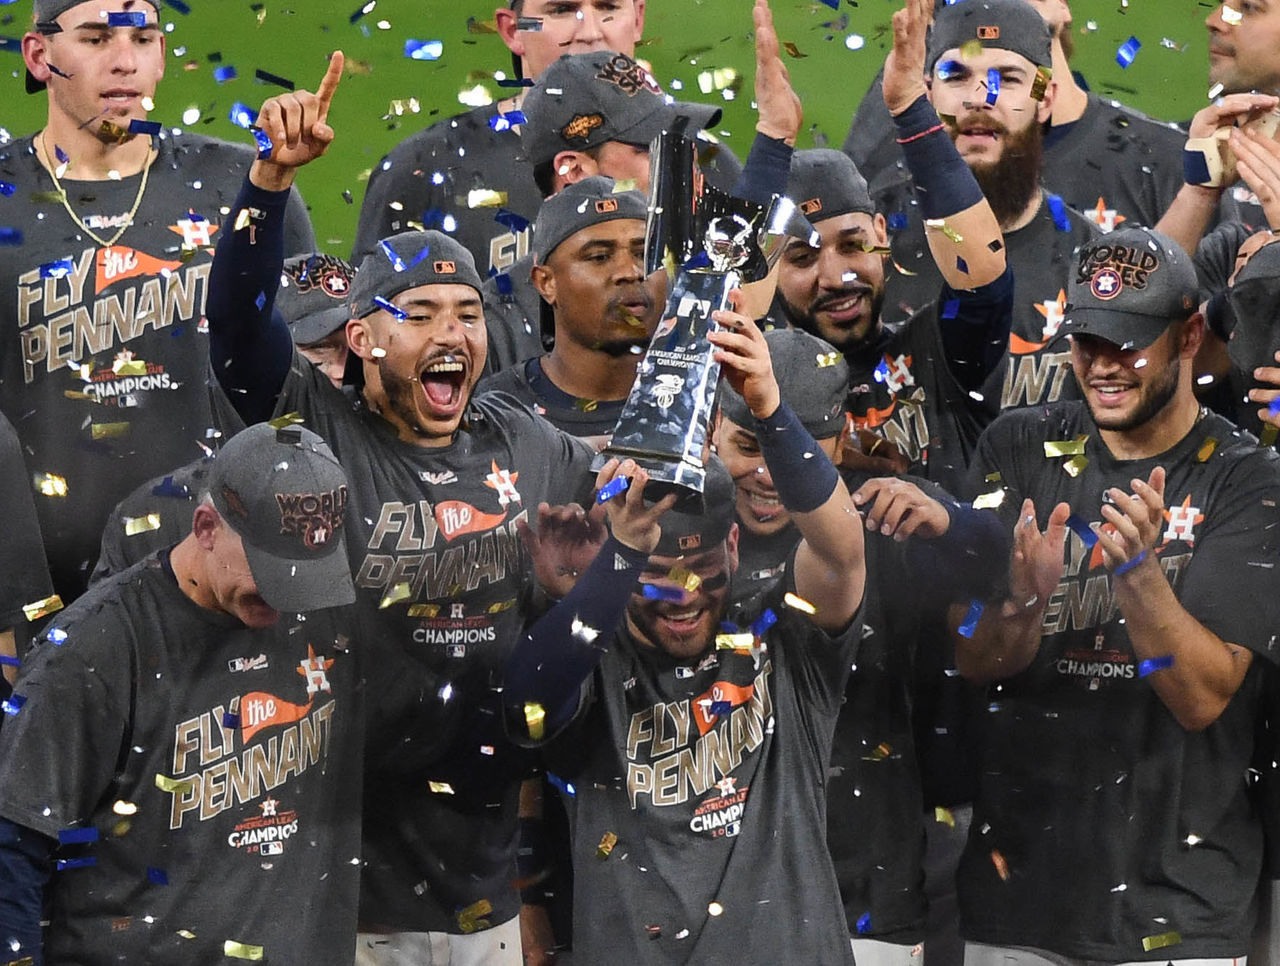 Cropped 2017 10 22t034945z 174739860 nocid rtrmadp 3 mlb alcs new york yankees at houston astros